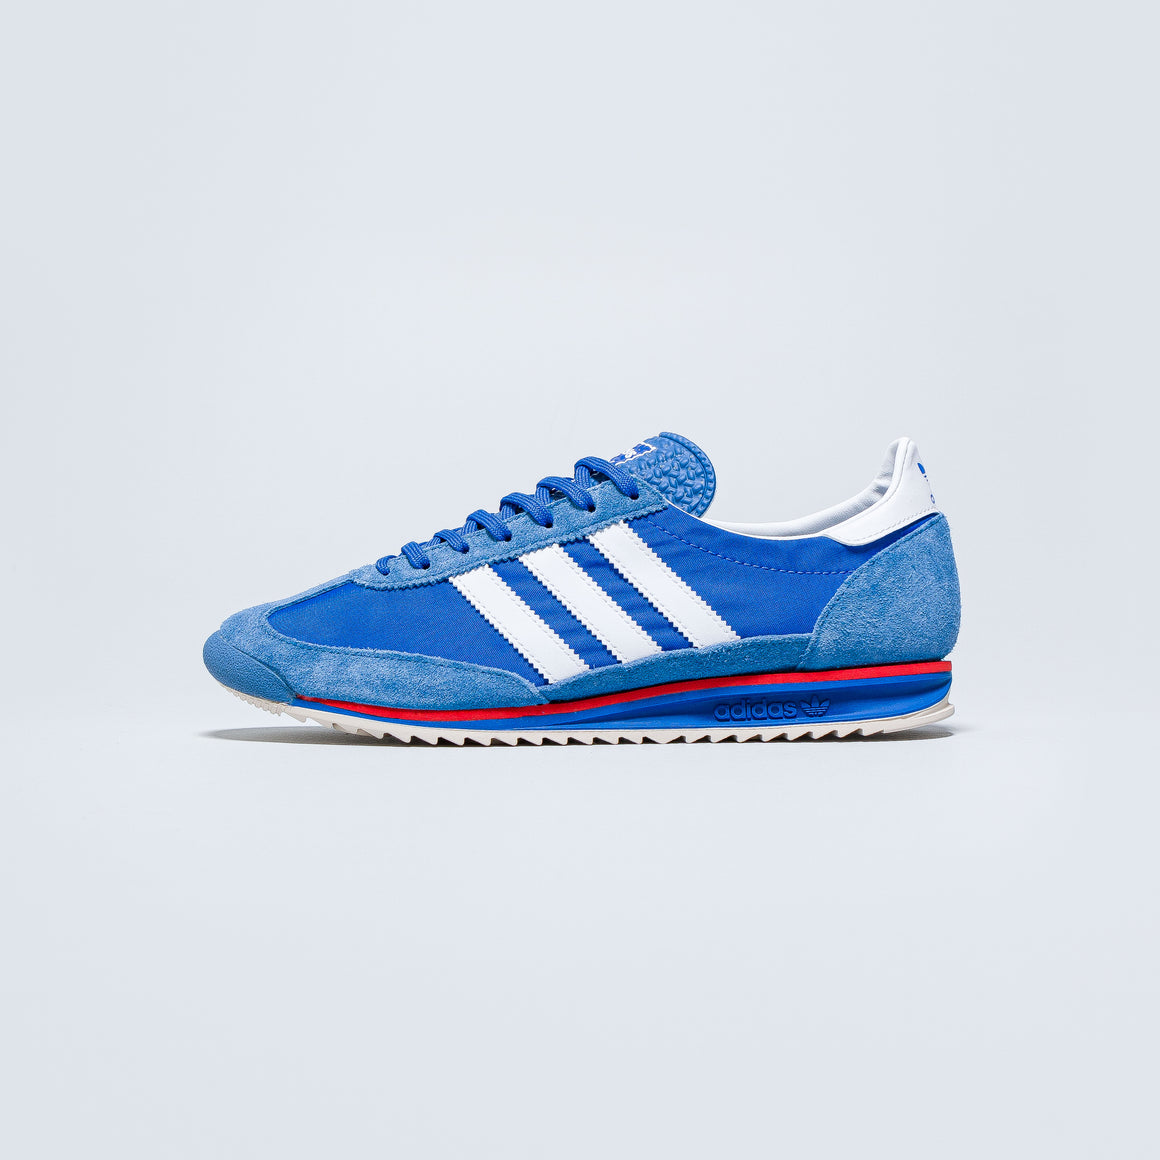 adidas - SL72 - Blue/Footwear White - Up There